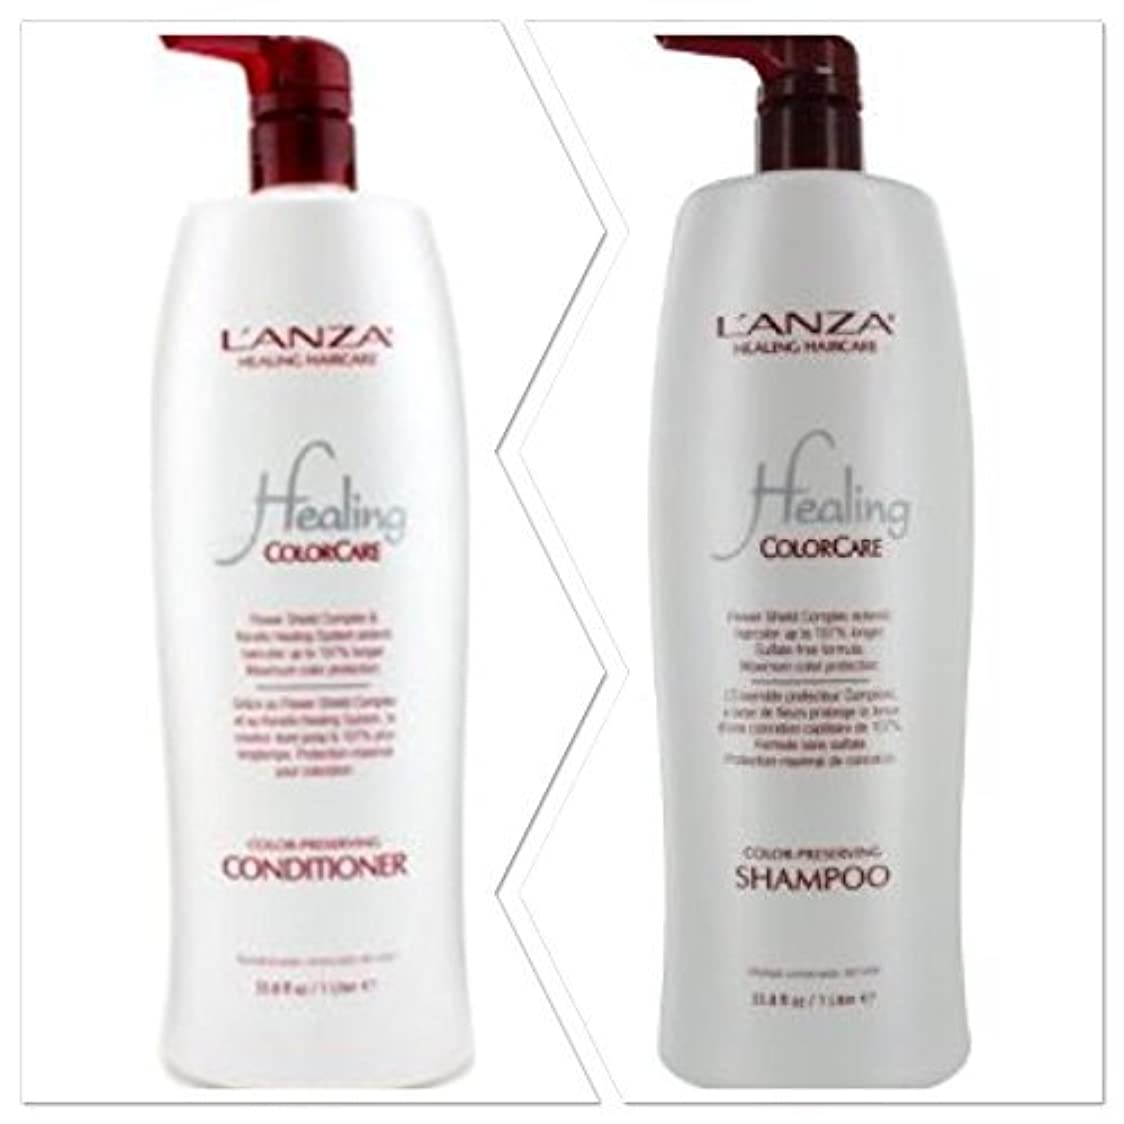 エジプト人無人ジョセフバンクスL'anza Healing Colorcare Color-preserving Shampoo + Conditioner Dou (33.8 oz (1Liter)) by L'anza